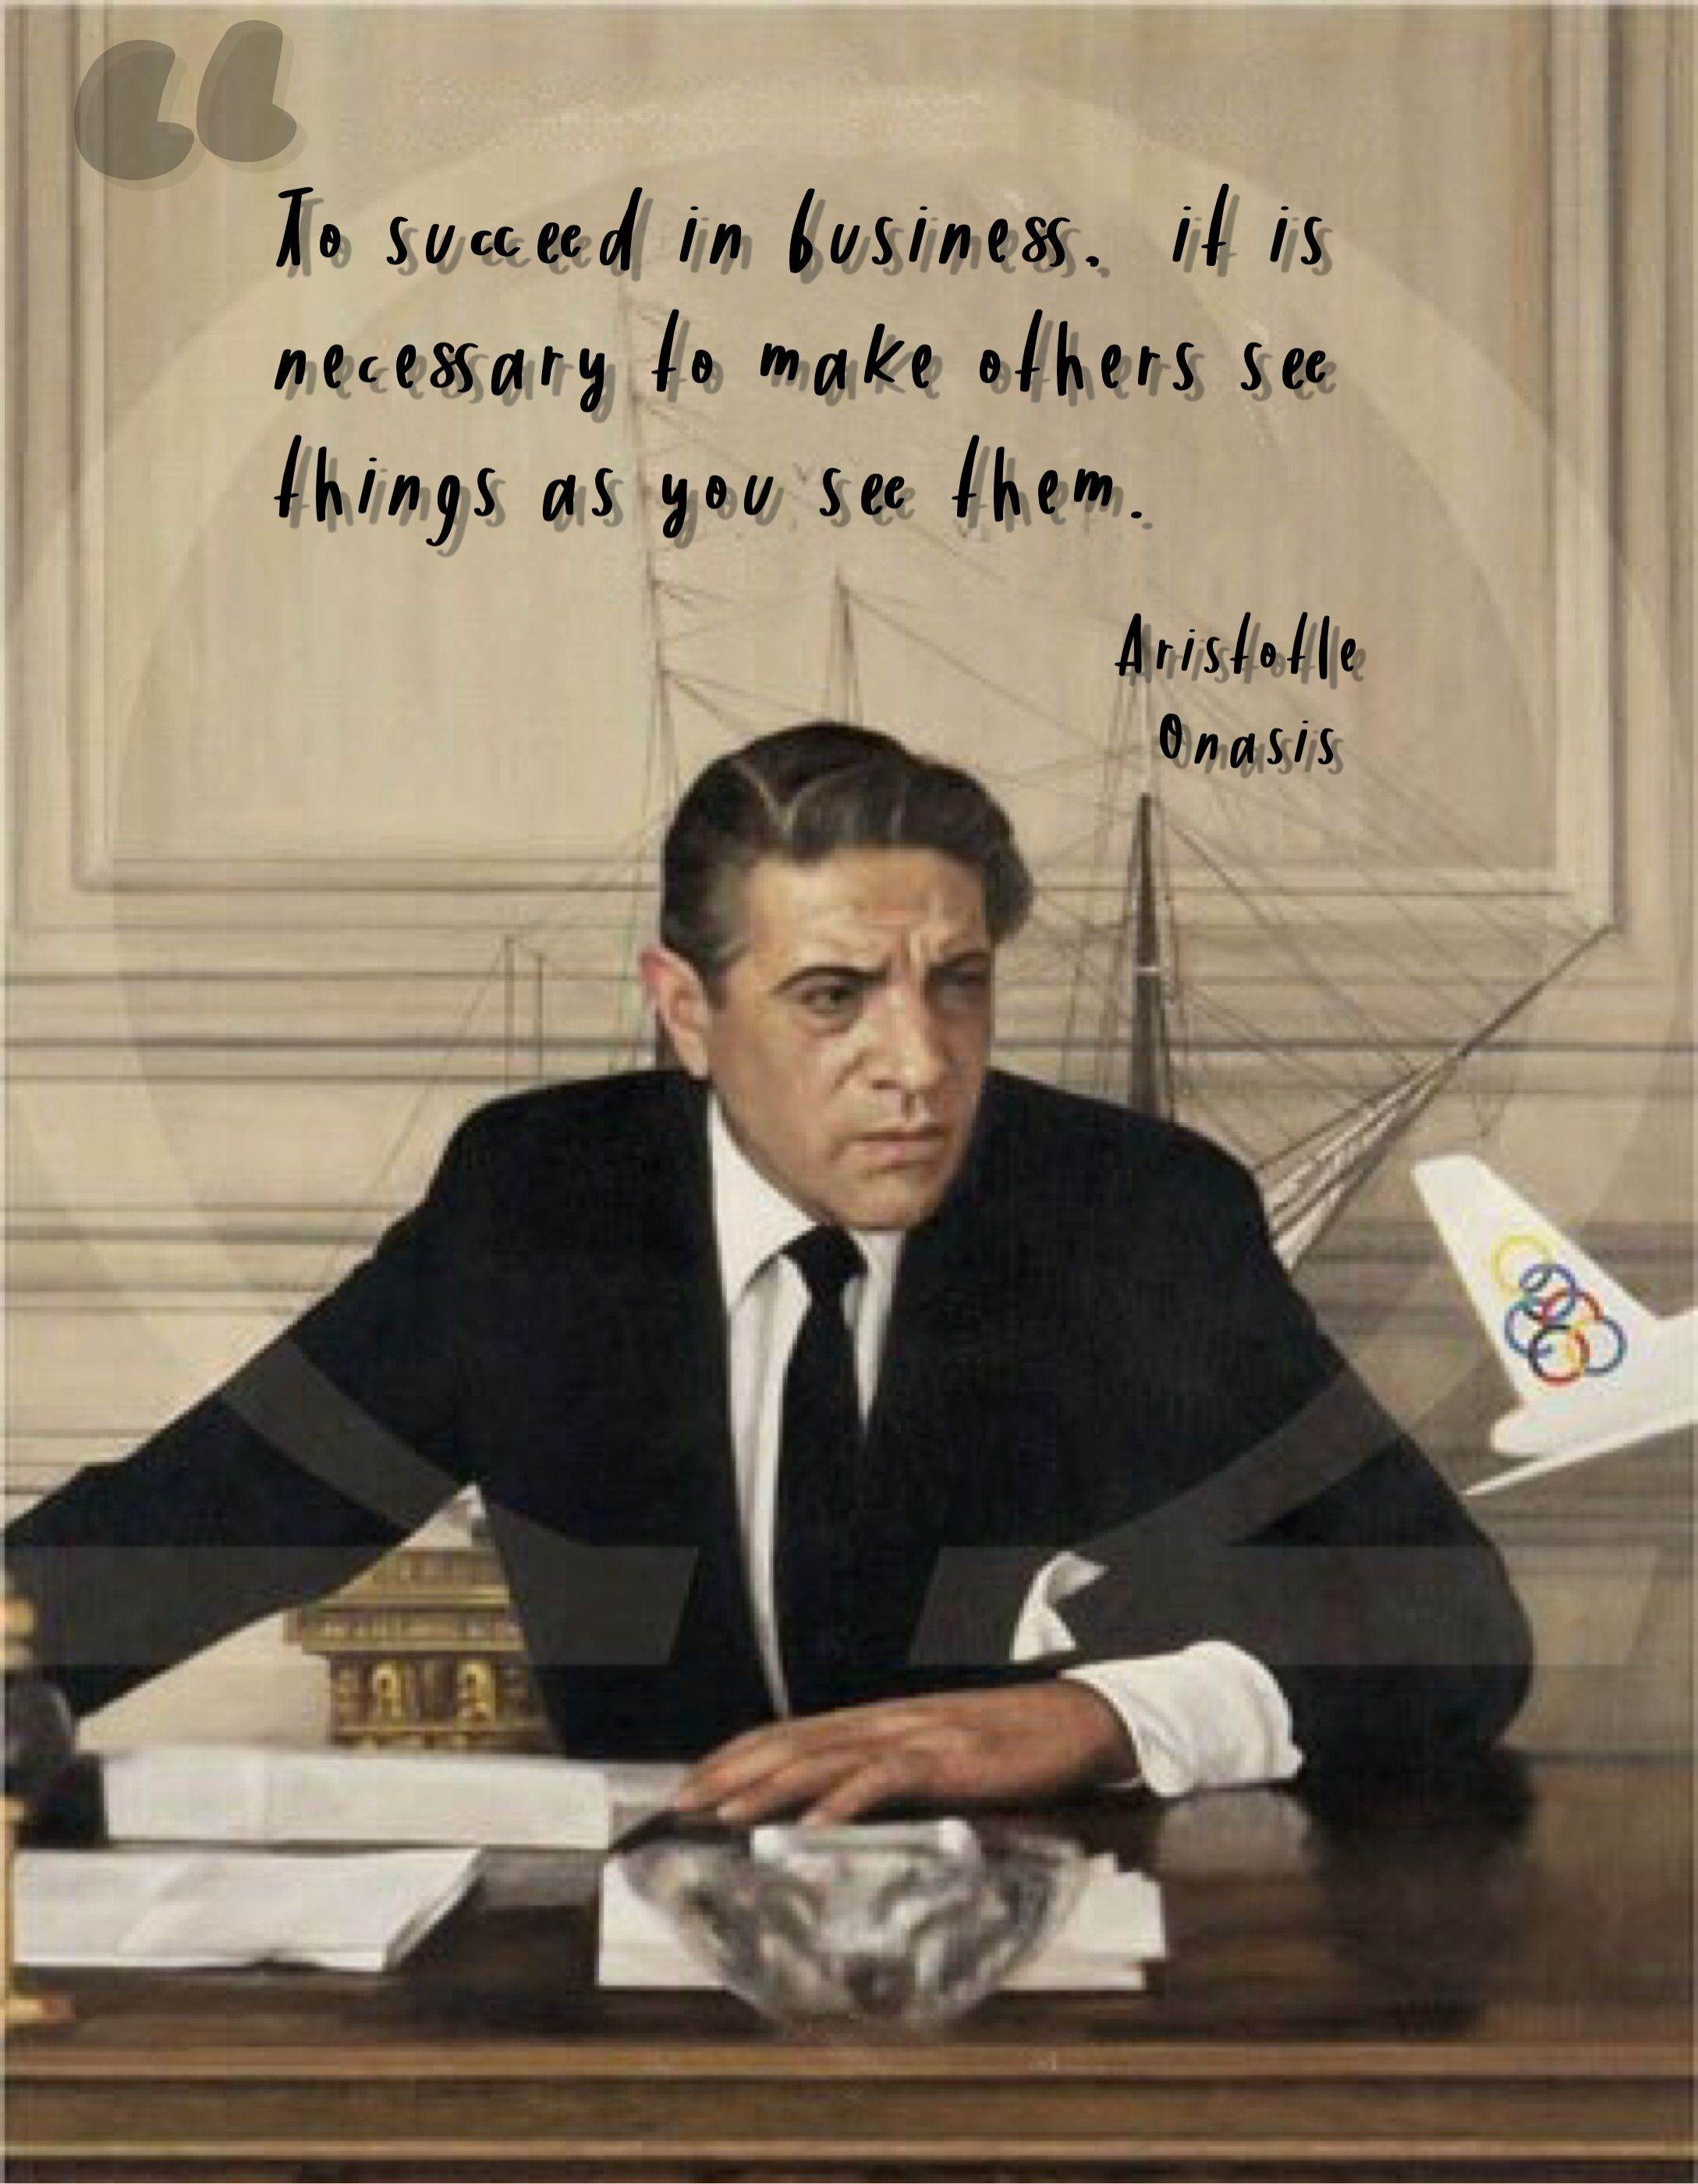 Pin By Francie Shaffer On Logia Eikone First Ladies Of The United States Aristotle Onassis Sayings